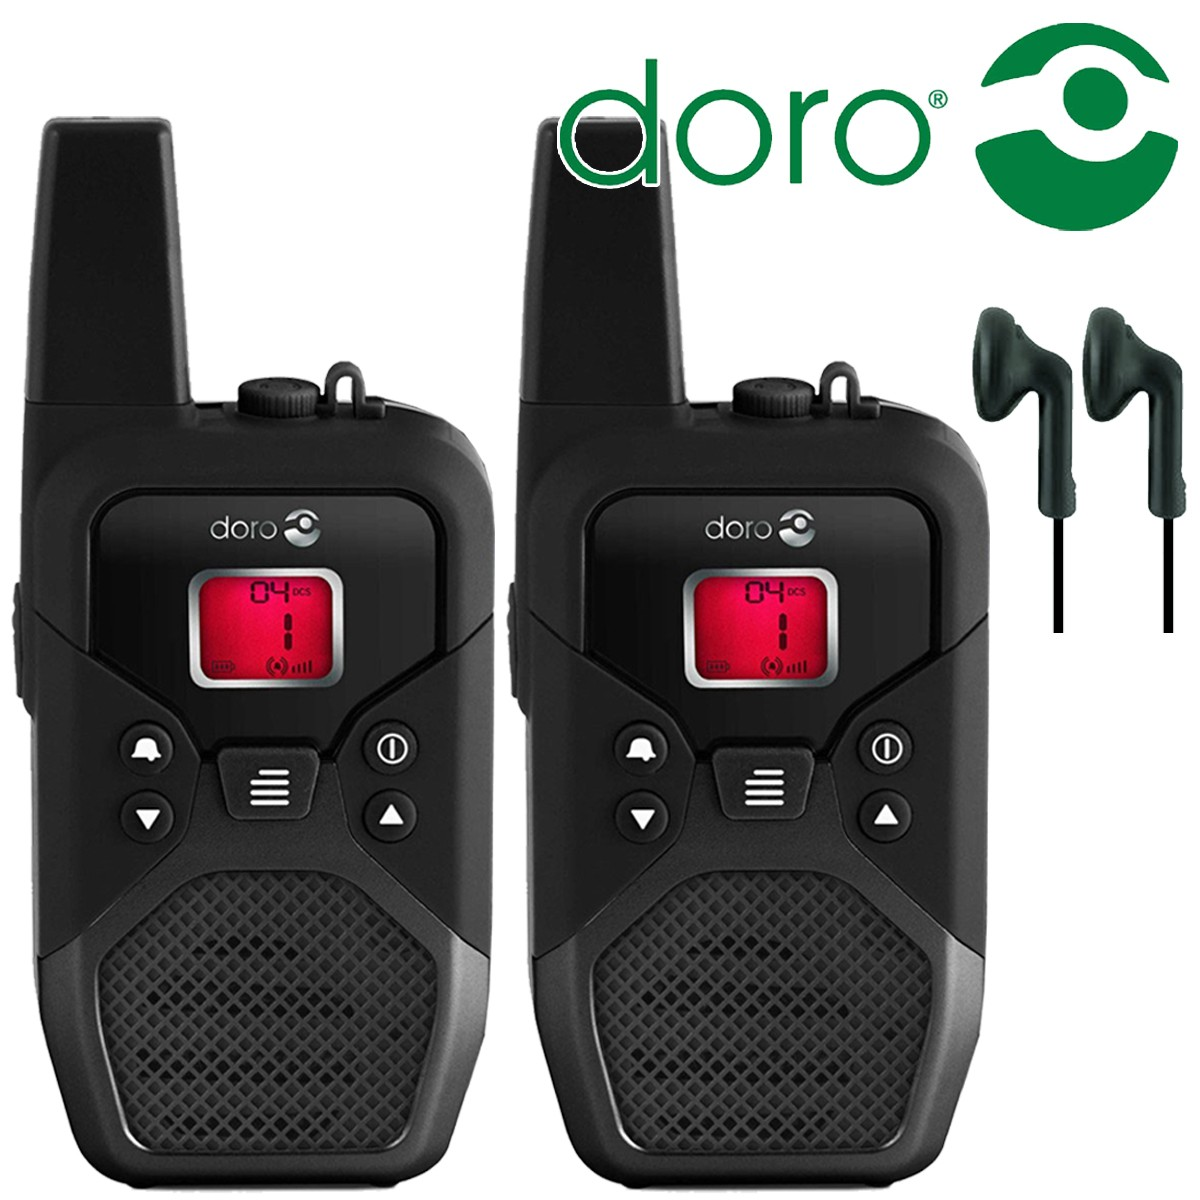 Mobile Two-Way Radios Motorola Analog and Digital Mobiles